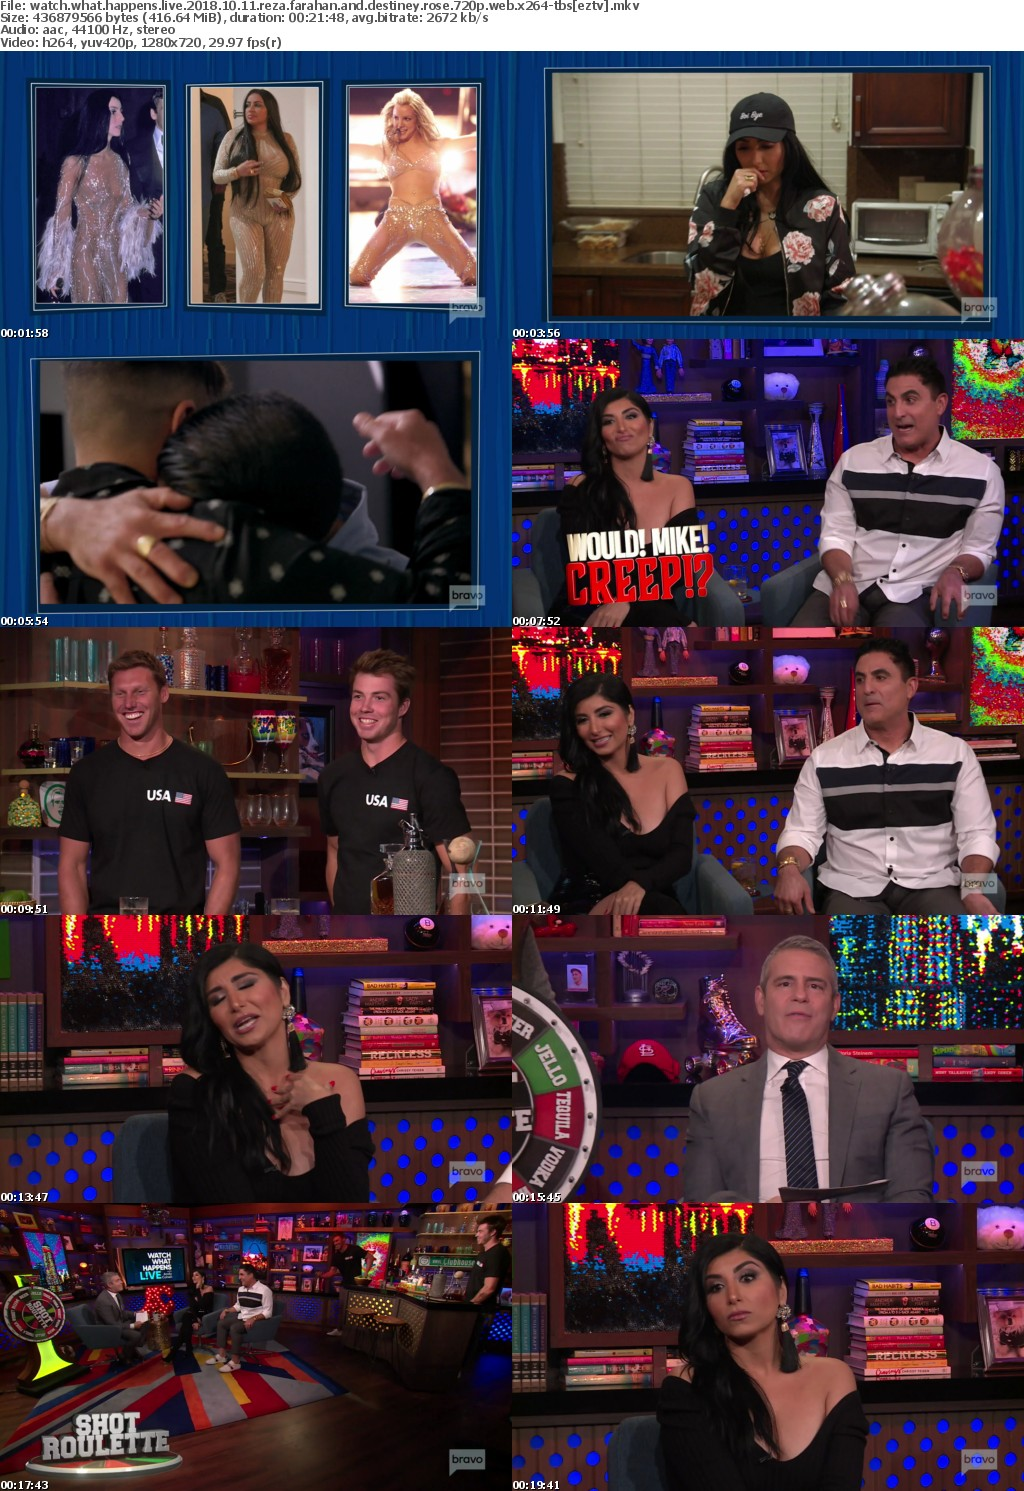 Watch What Happens Live 2018 10 11 Reza Farahan and Destiney Rose 720p WEB x264-TBS